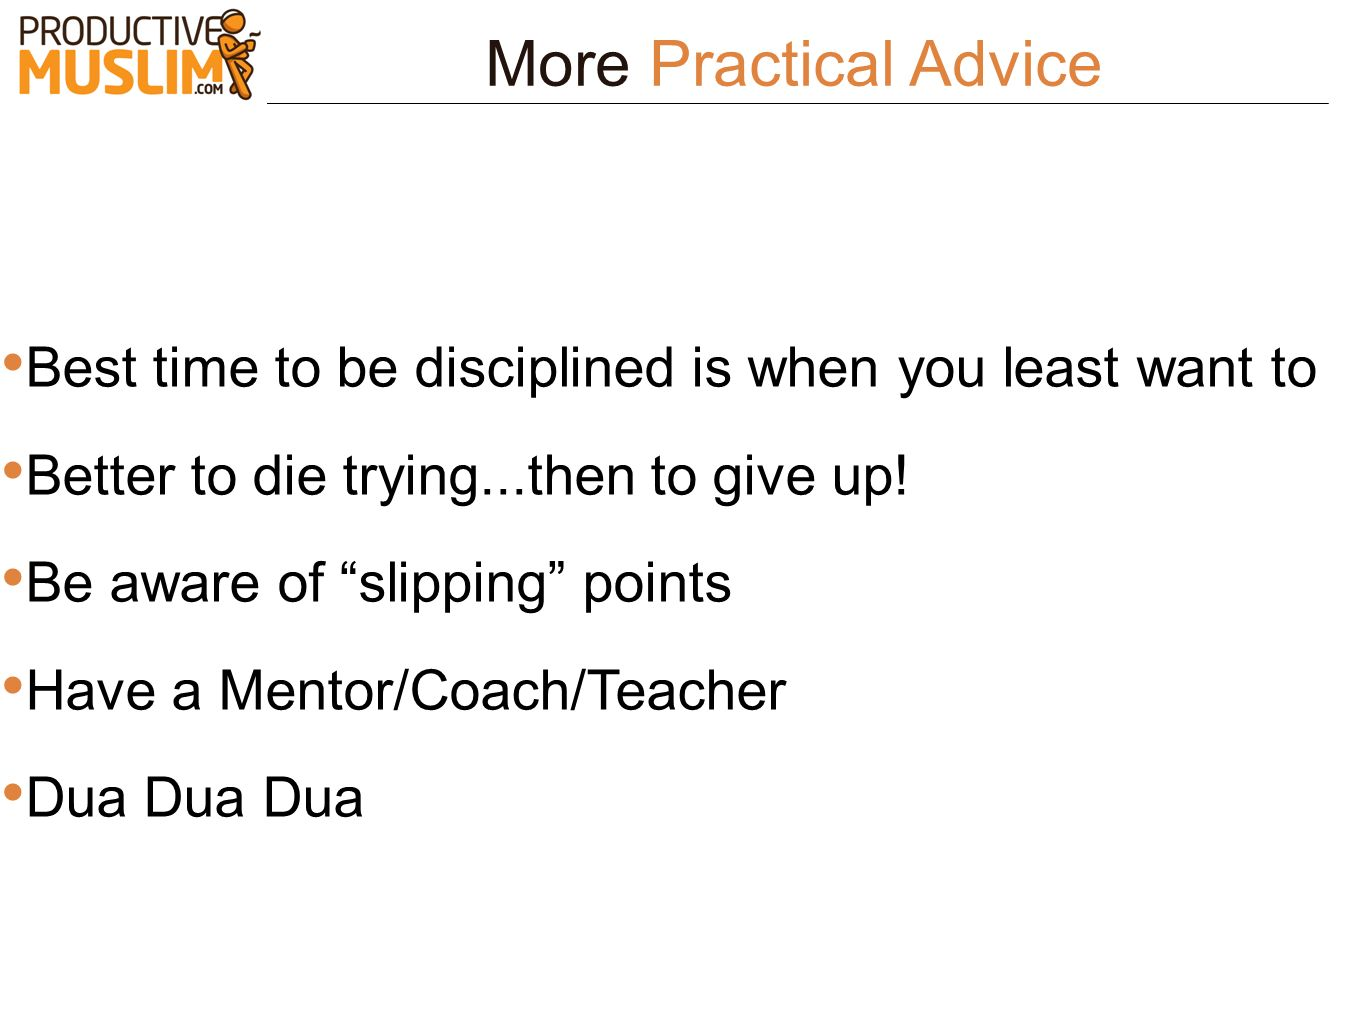 More Practical Advice Best time to be disciplined is when you least want to Better to die trying...then to give up! Be aware of slipping points Have a